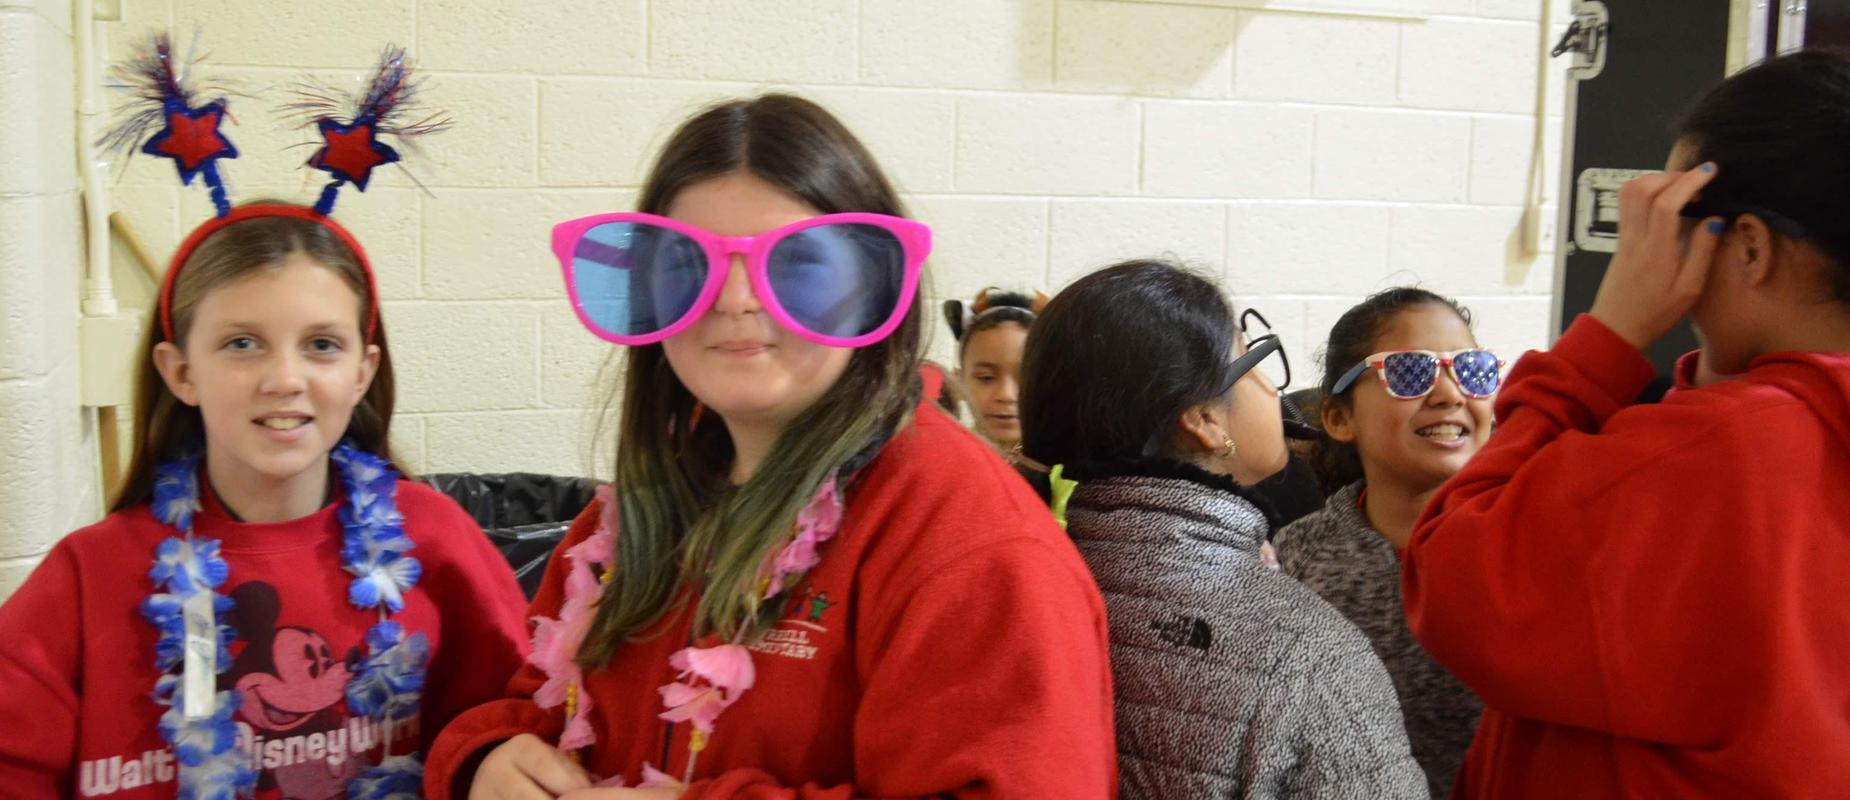 stuents smiling, wearing headbands and sunglasses